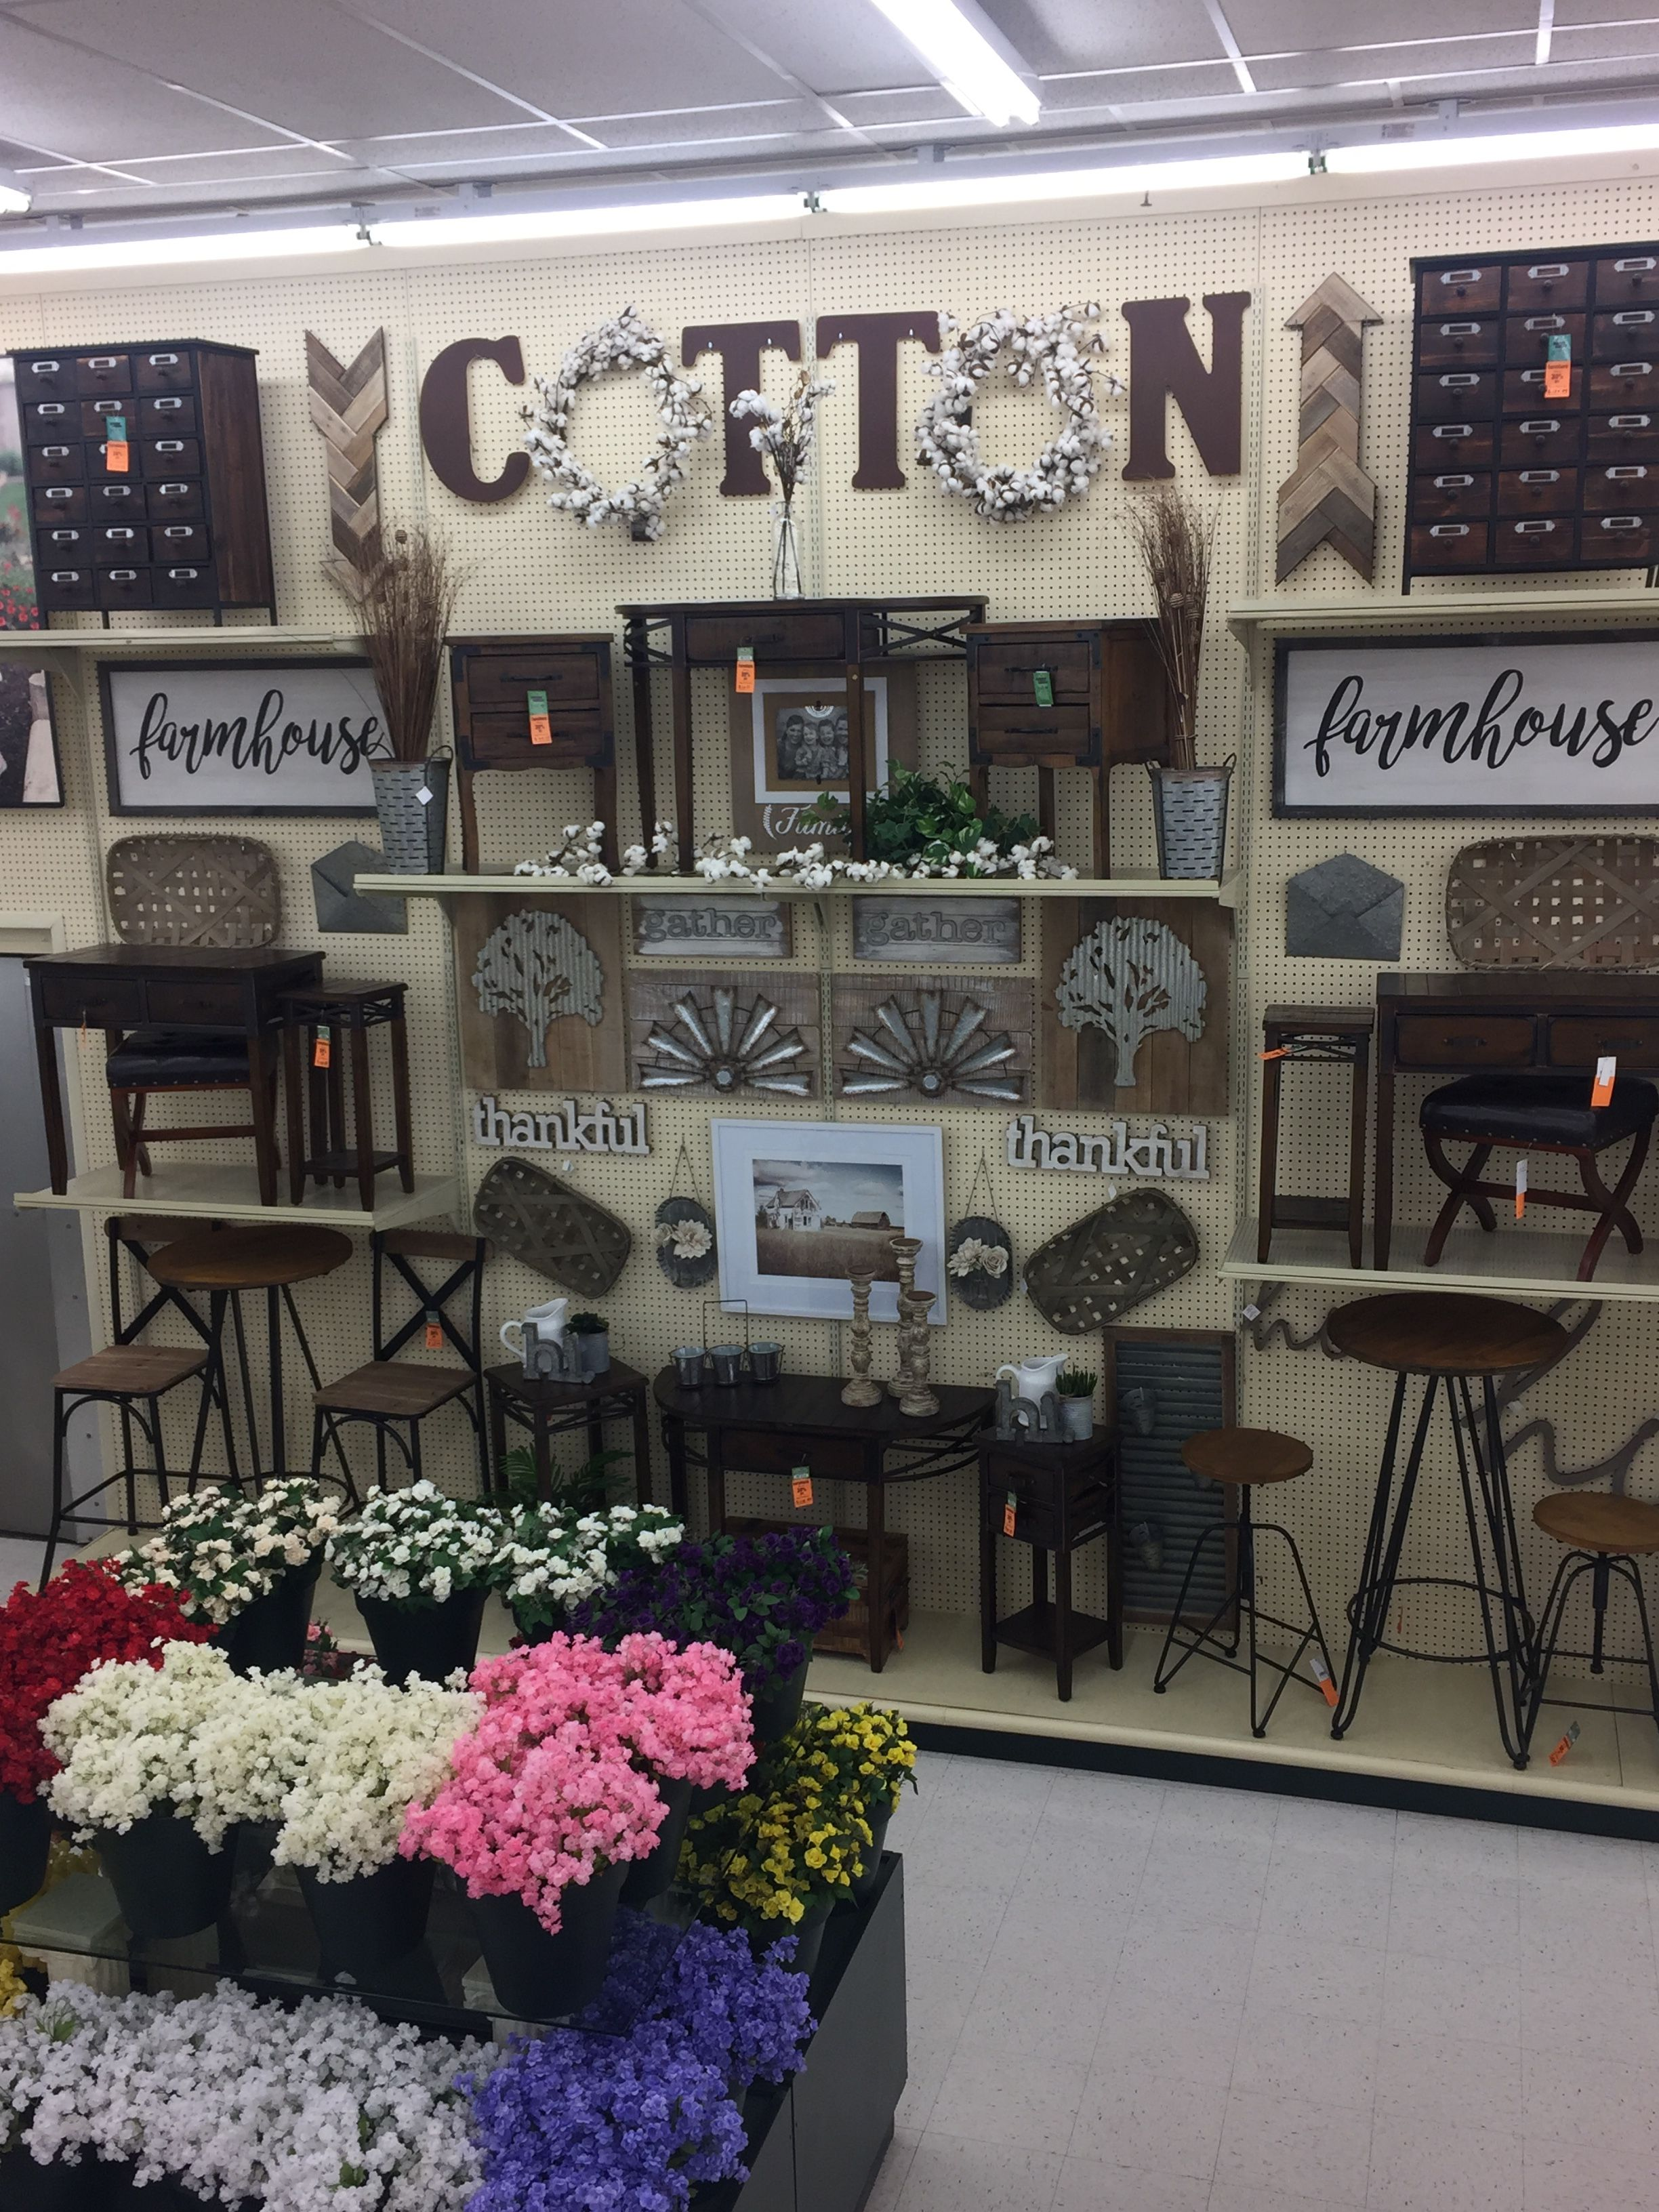 Cotton Rustic farmhouse decor